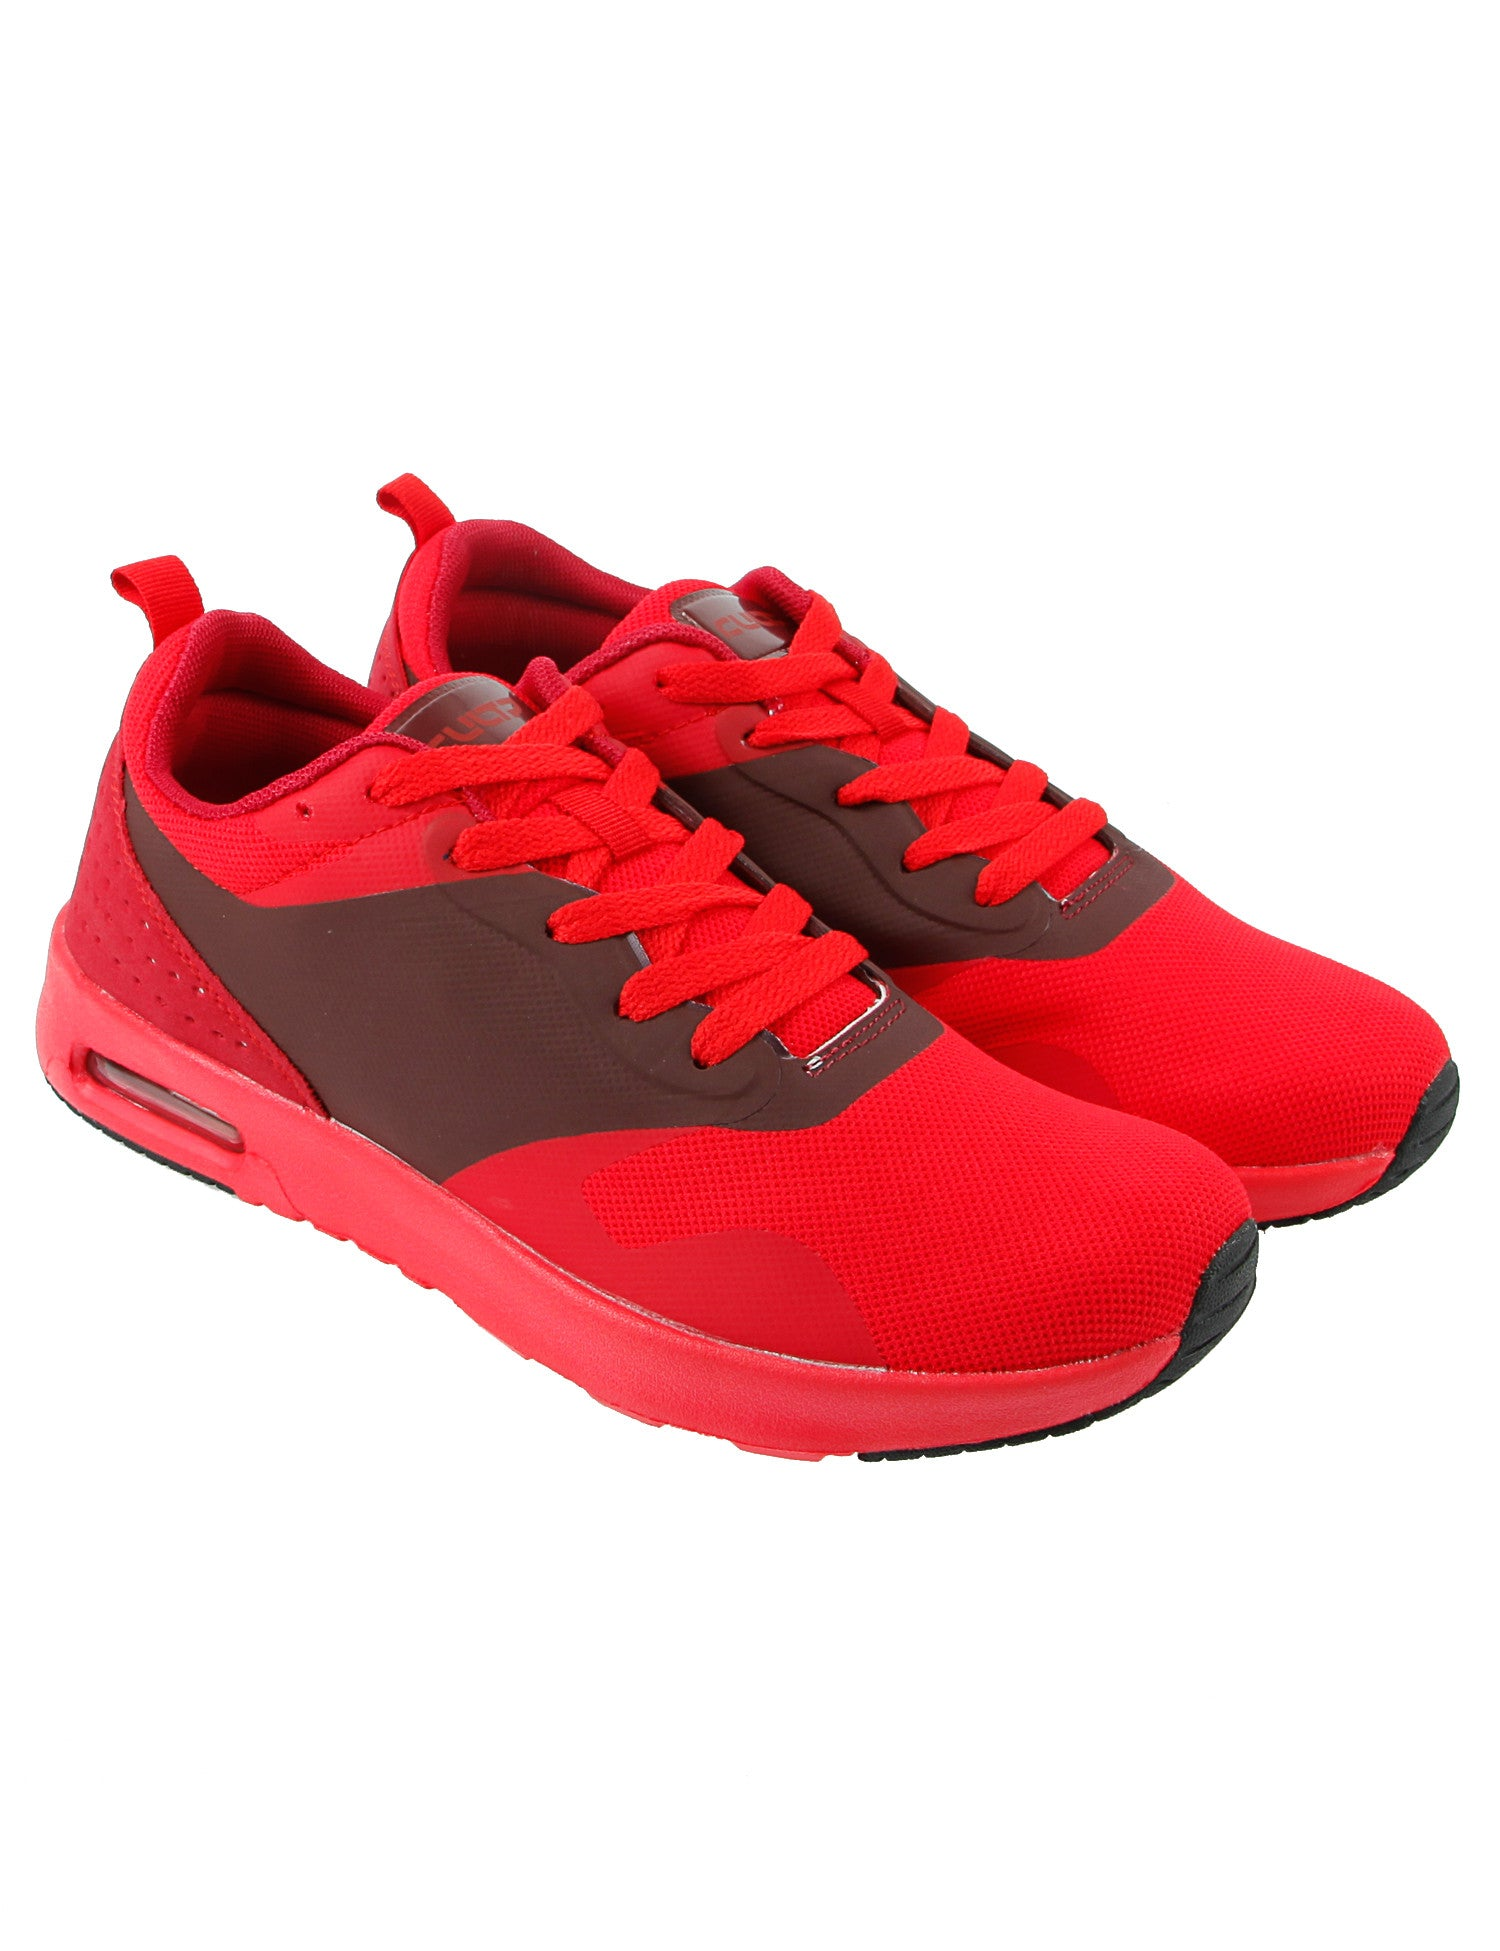 Cultz Shoes 150516-3 Red